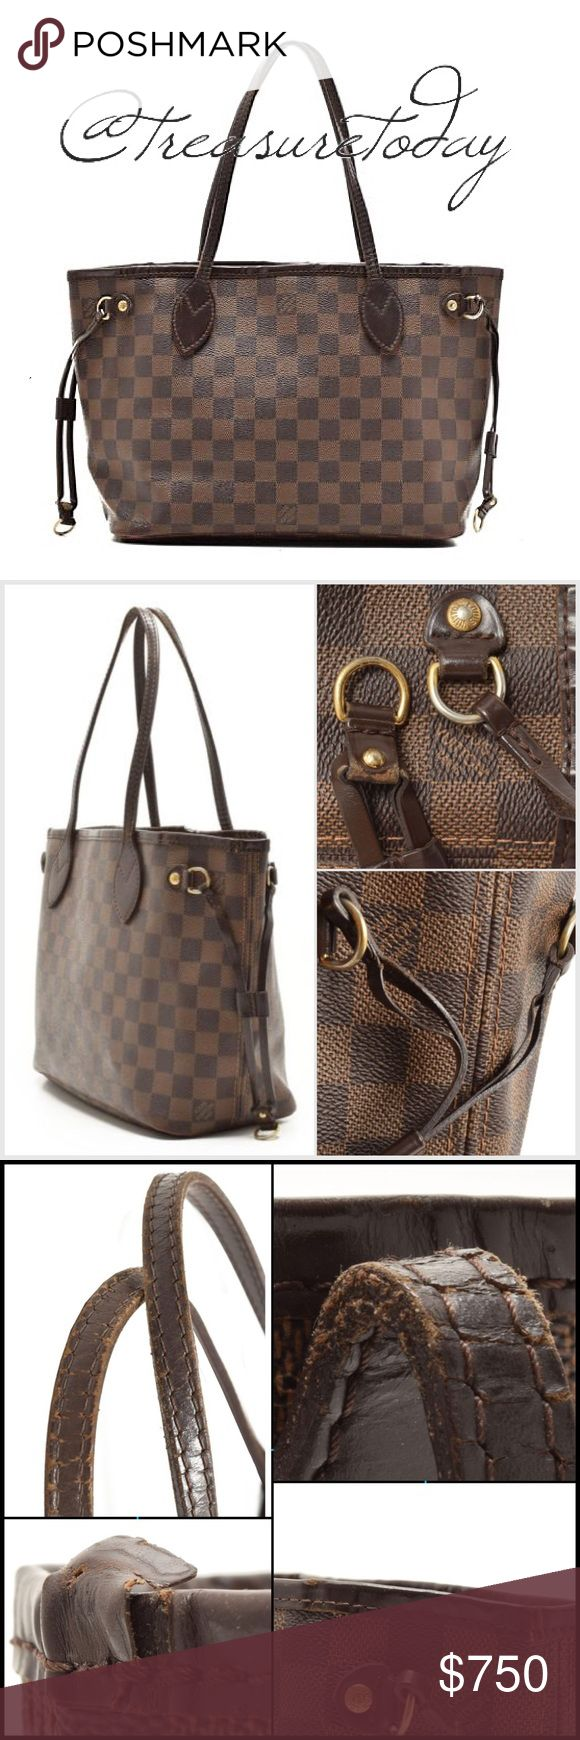 Louis Vuitton Neverfull PM Damier Ebene Tote Bag Beautiful authentic Louis Vuitton Tote , %100 authentic! Brown checkered Damier Ebene coated canvas with dark brown leather trim and handles. Red lined interior with zip pocket. This bag was well loved and shows normal wear- please refer to pictures and use the zoom feature to see details. All the wear is hardly noticeable in person unless examined closely. The interior has some minor stains and the zip pocket has some pilling. The bag is…